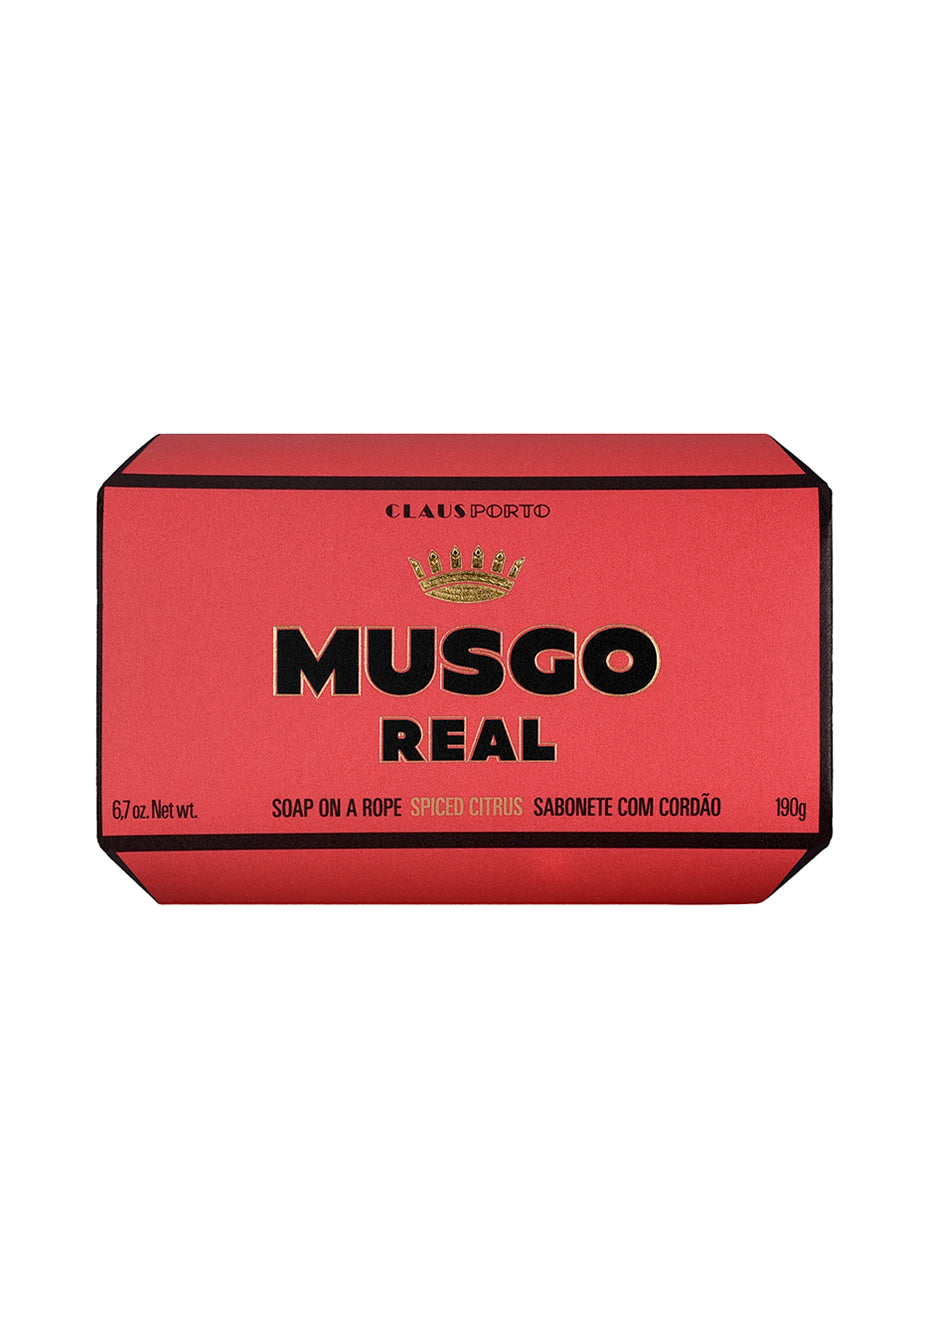 Musgo Real Soap On A Rope Spiced Citrus